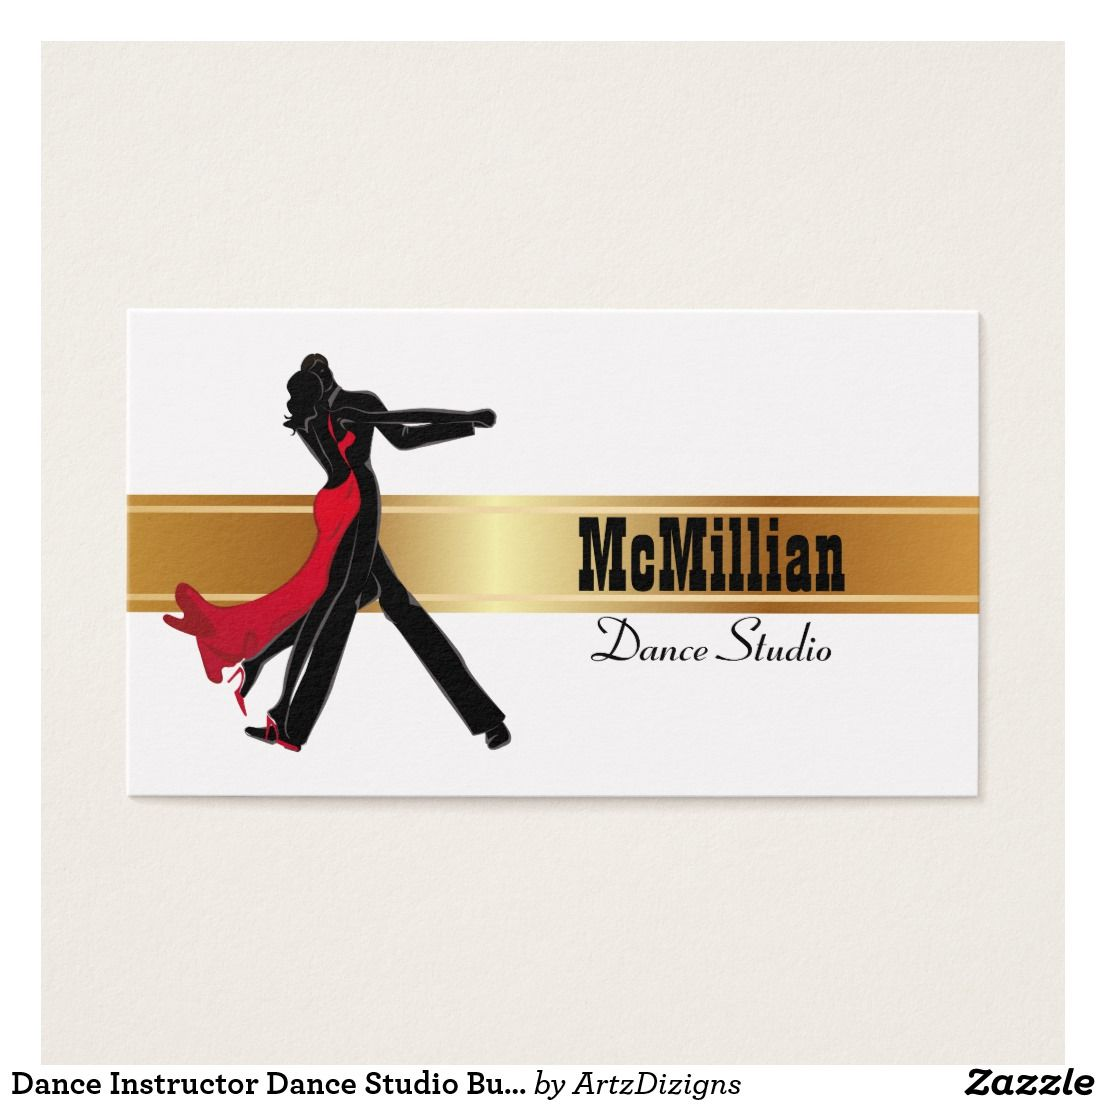 Dance Instructor Job Description Beauteous Dance Instructor Dance Studio Business Cards  Dance Instructor .